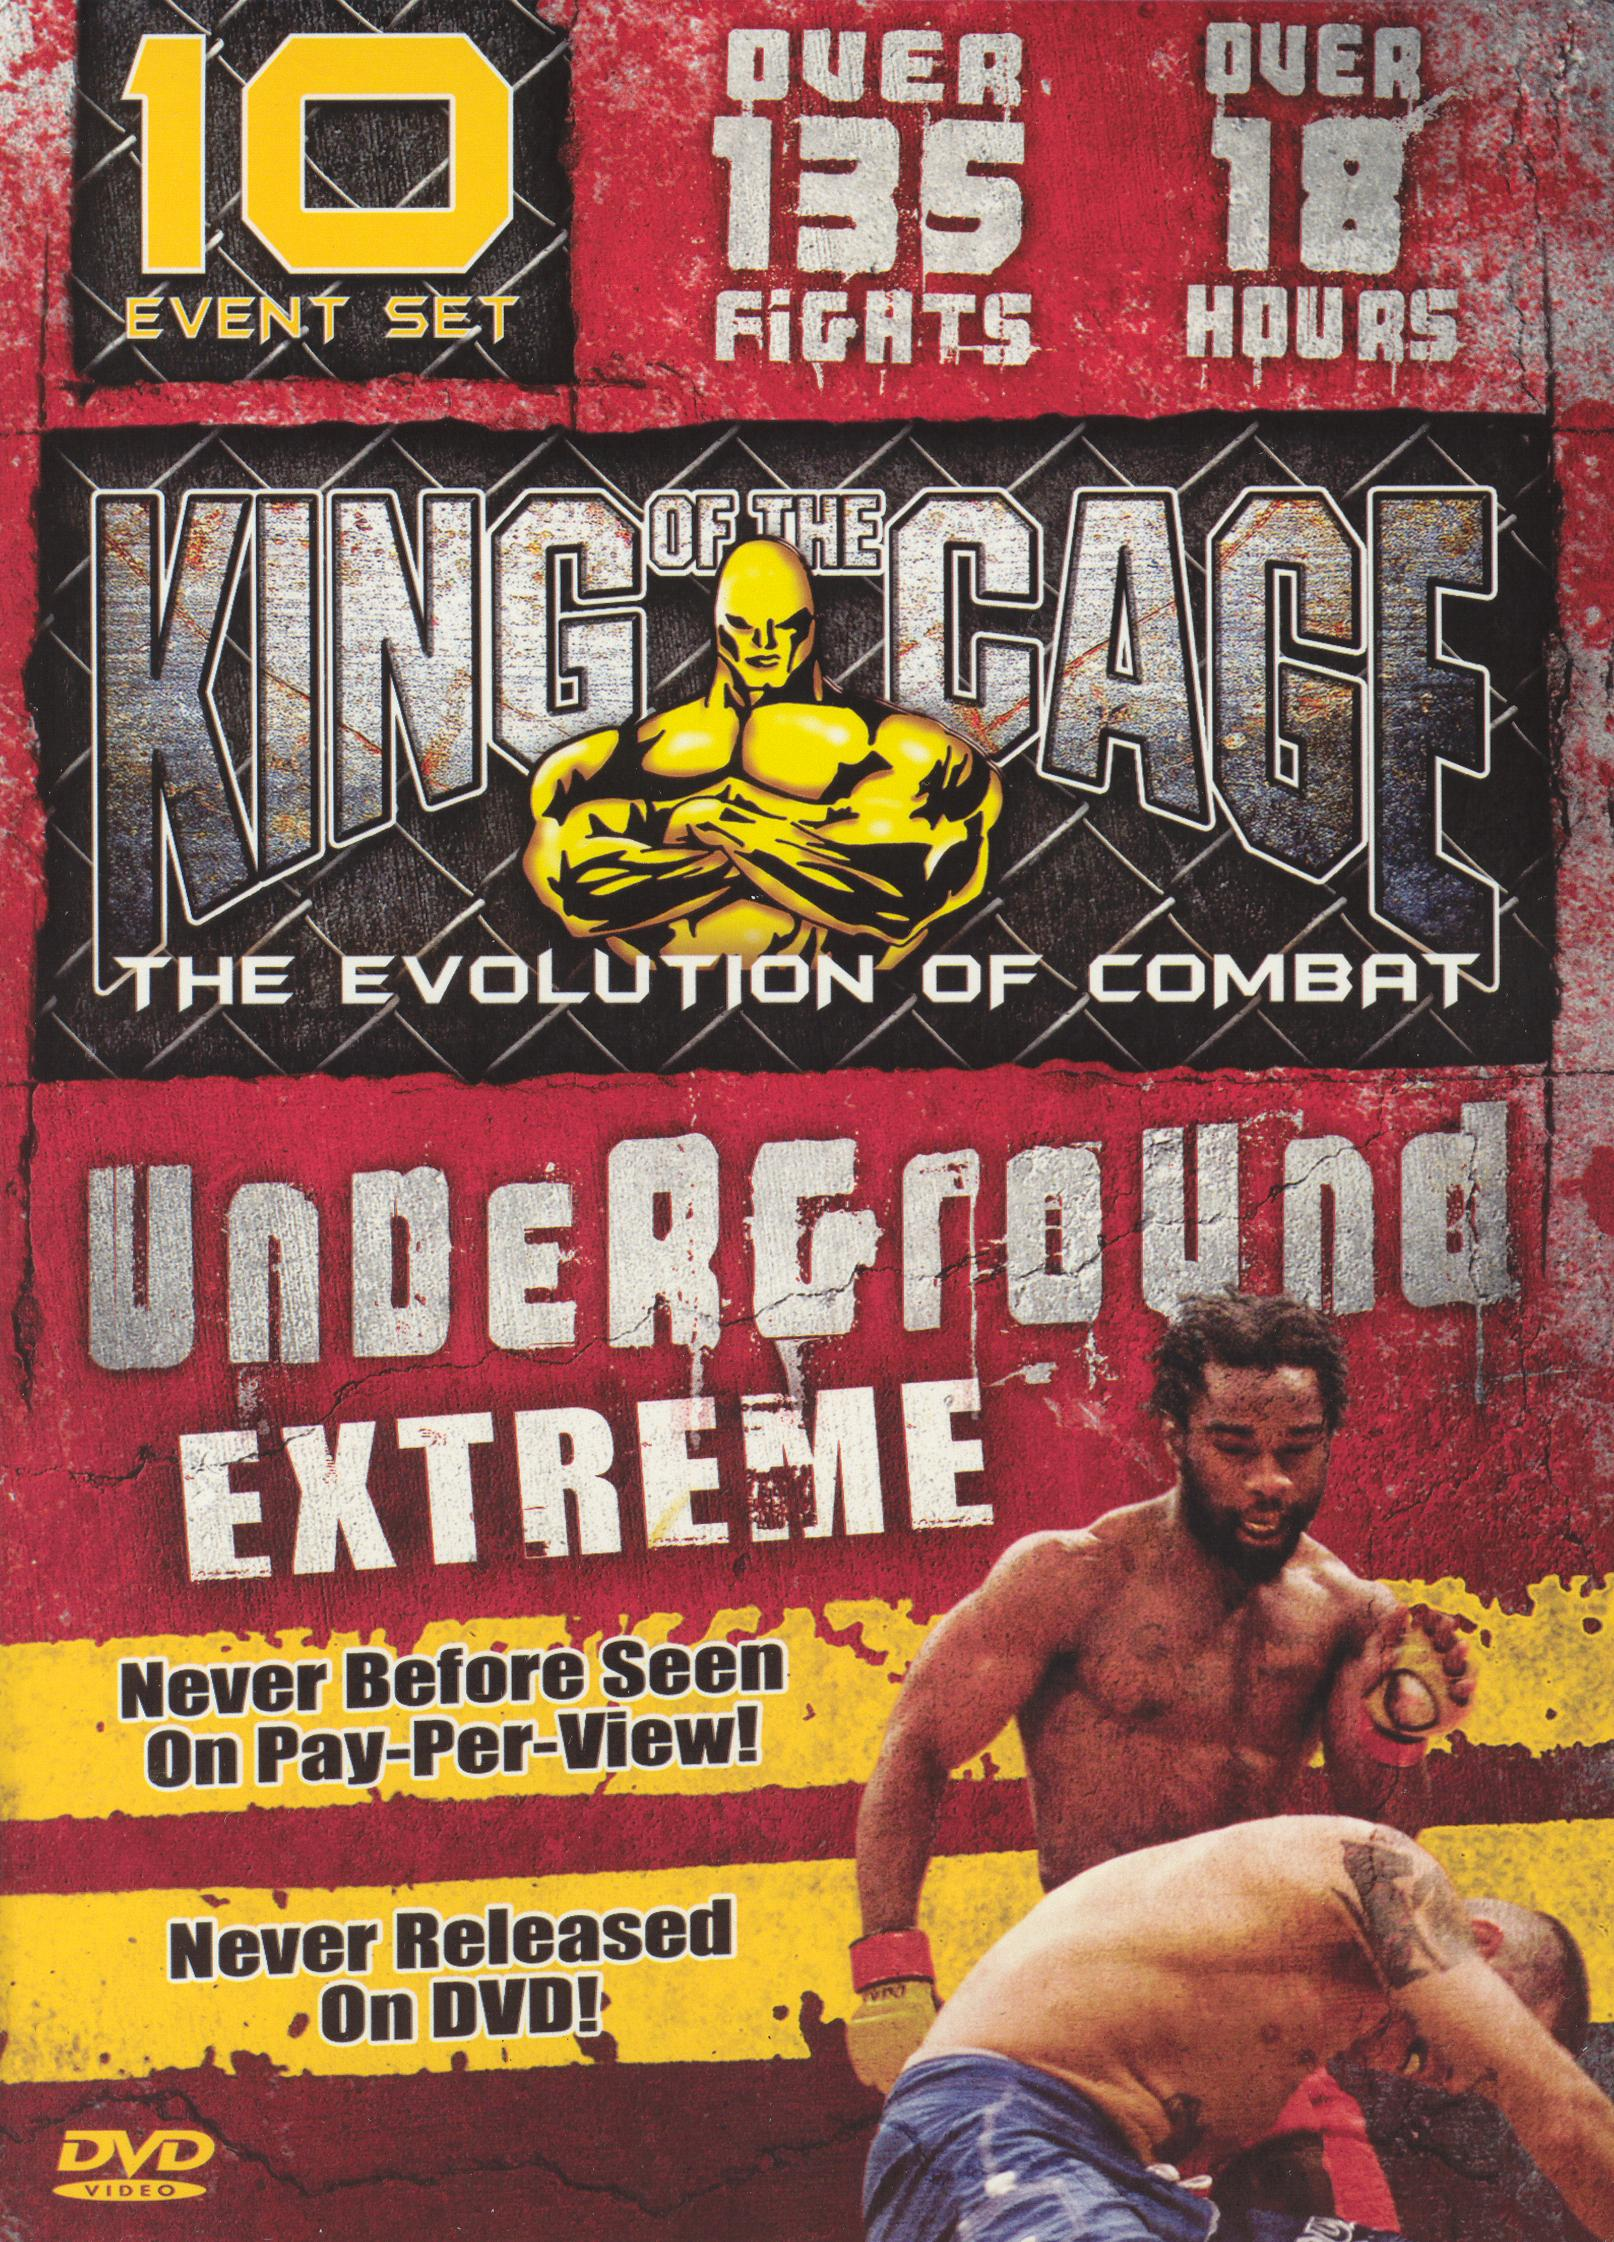 King of the Cage: Underground - Extreme